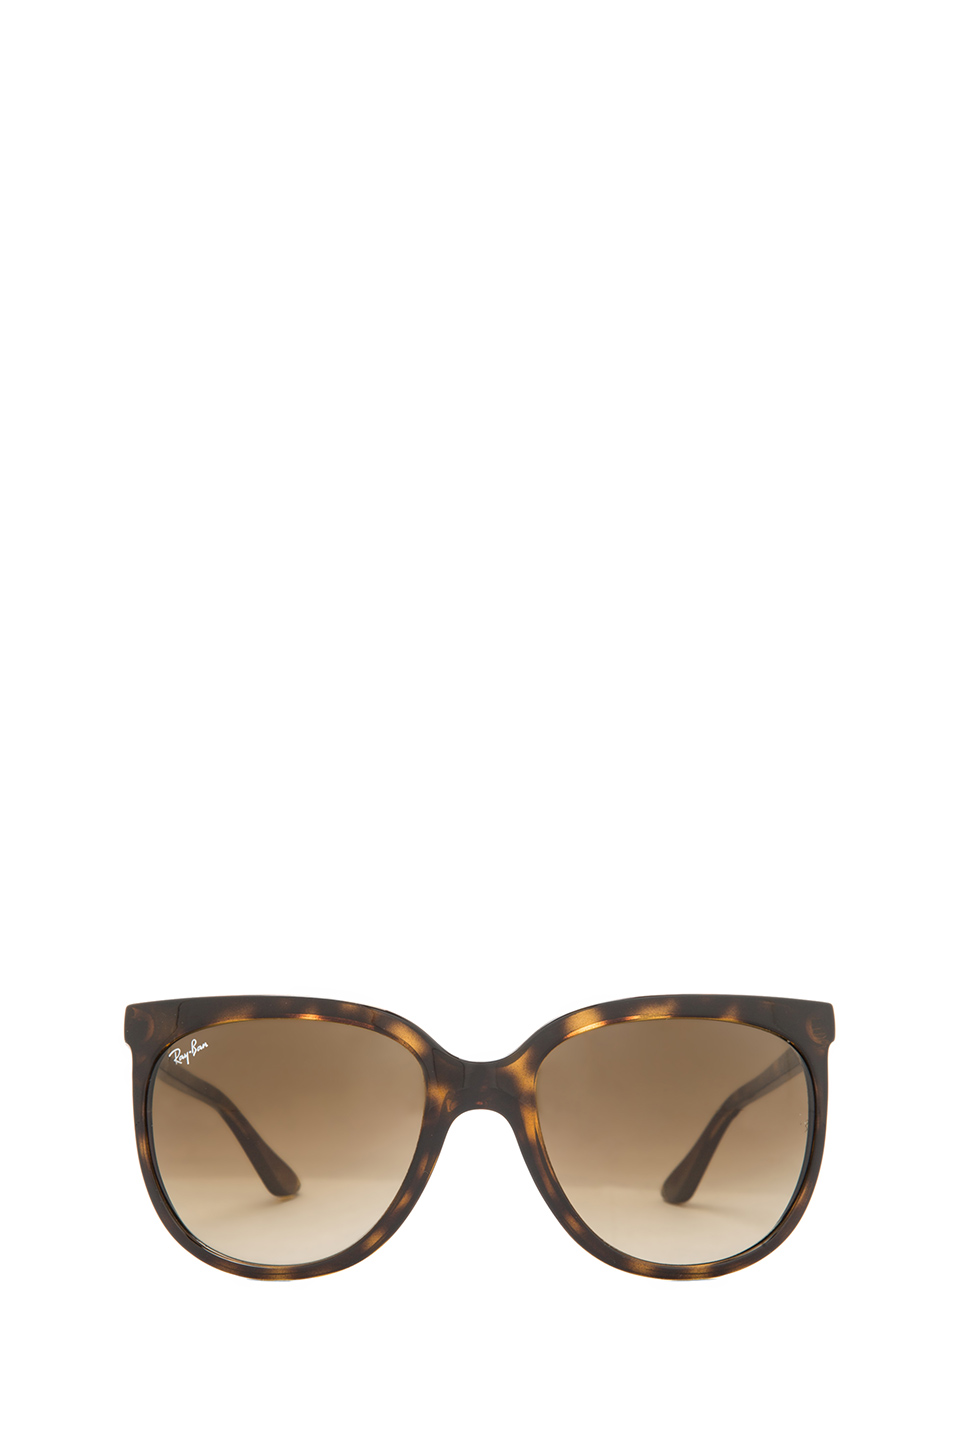 Ray-Ban Retro Cats 1000 in Tortoise Gradient